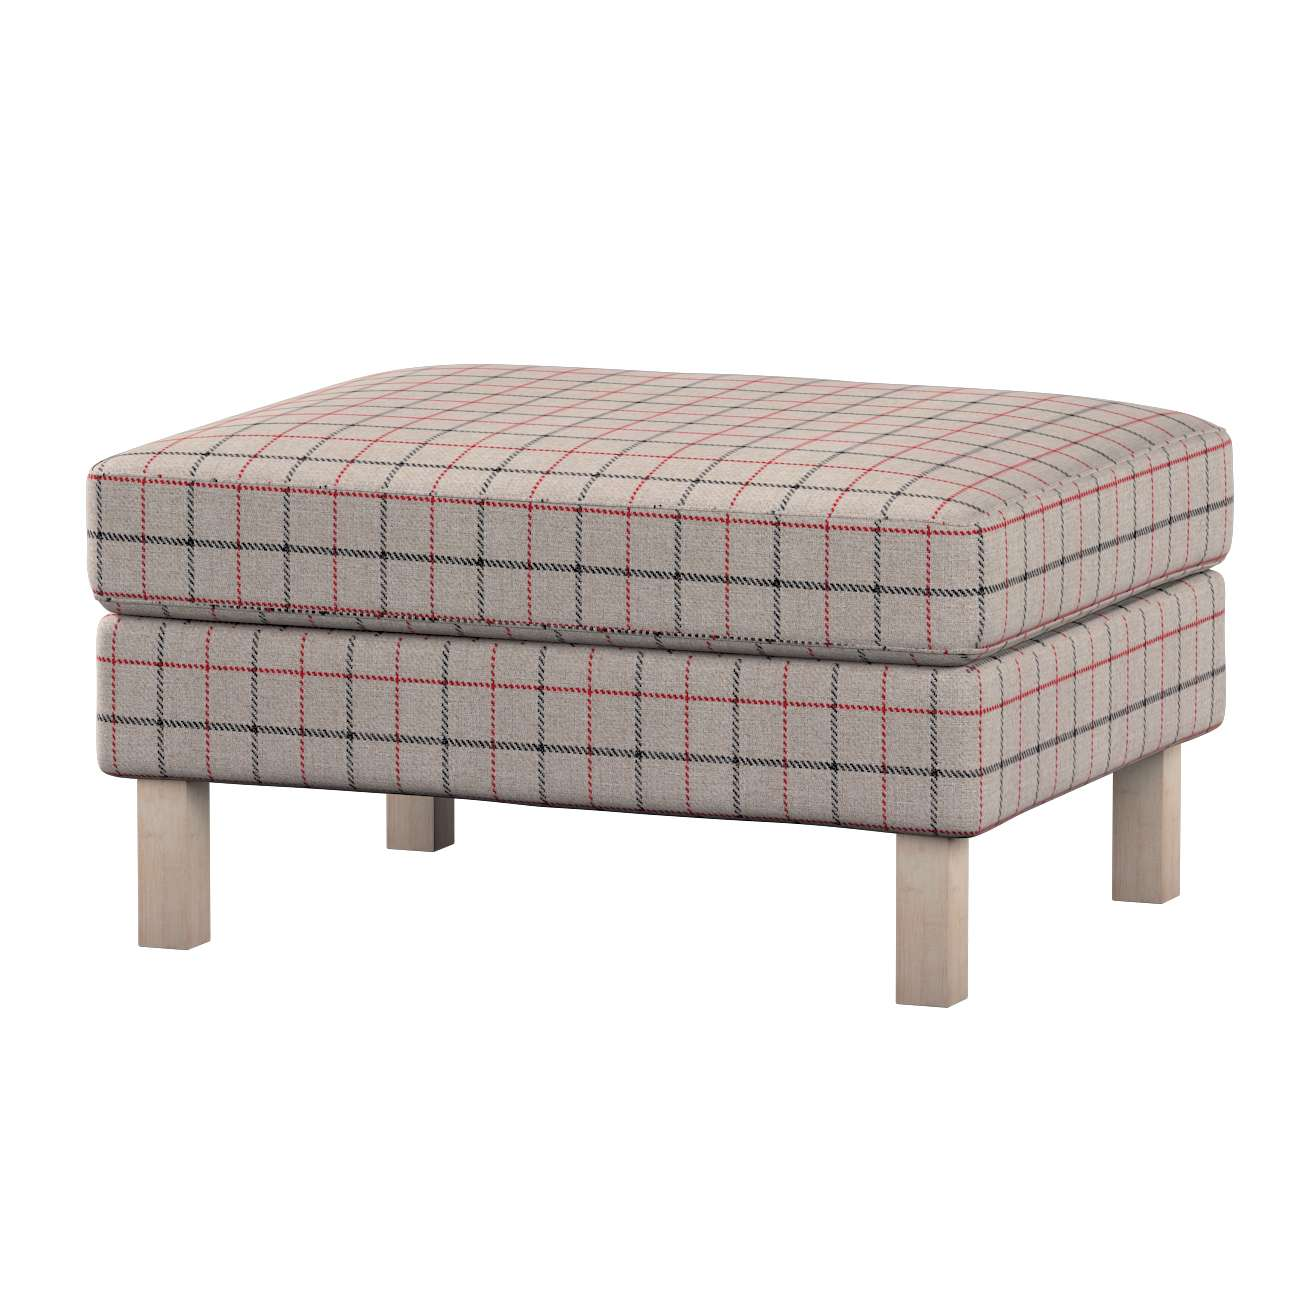 Karlstad footstool cover Karlstad footstool cover in collection Edinburgh, fabric: 703-13